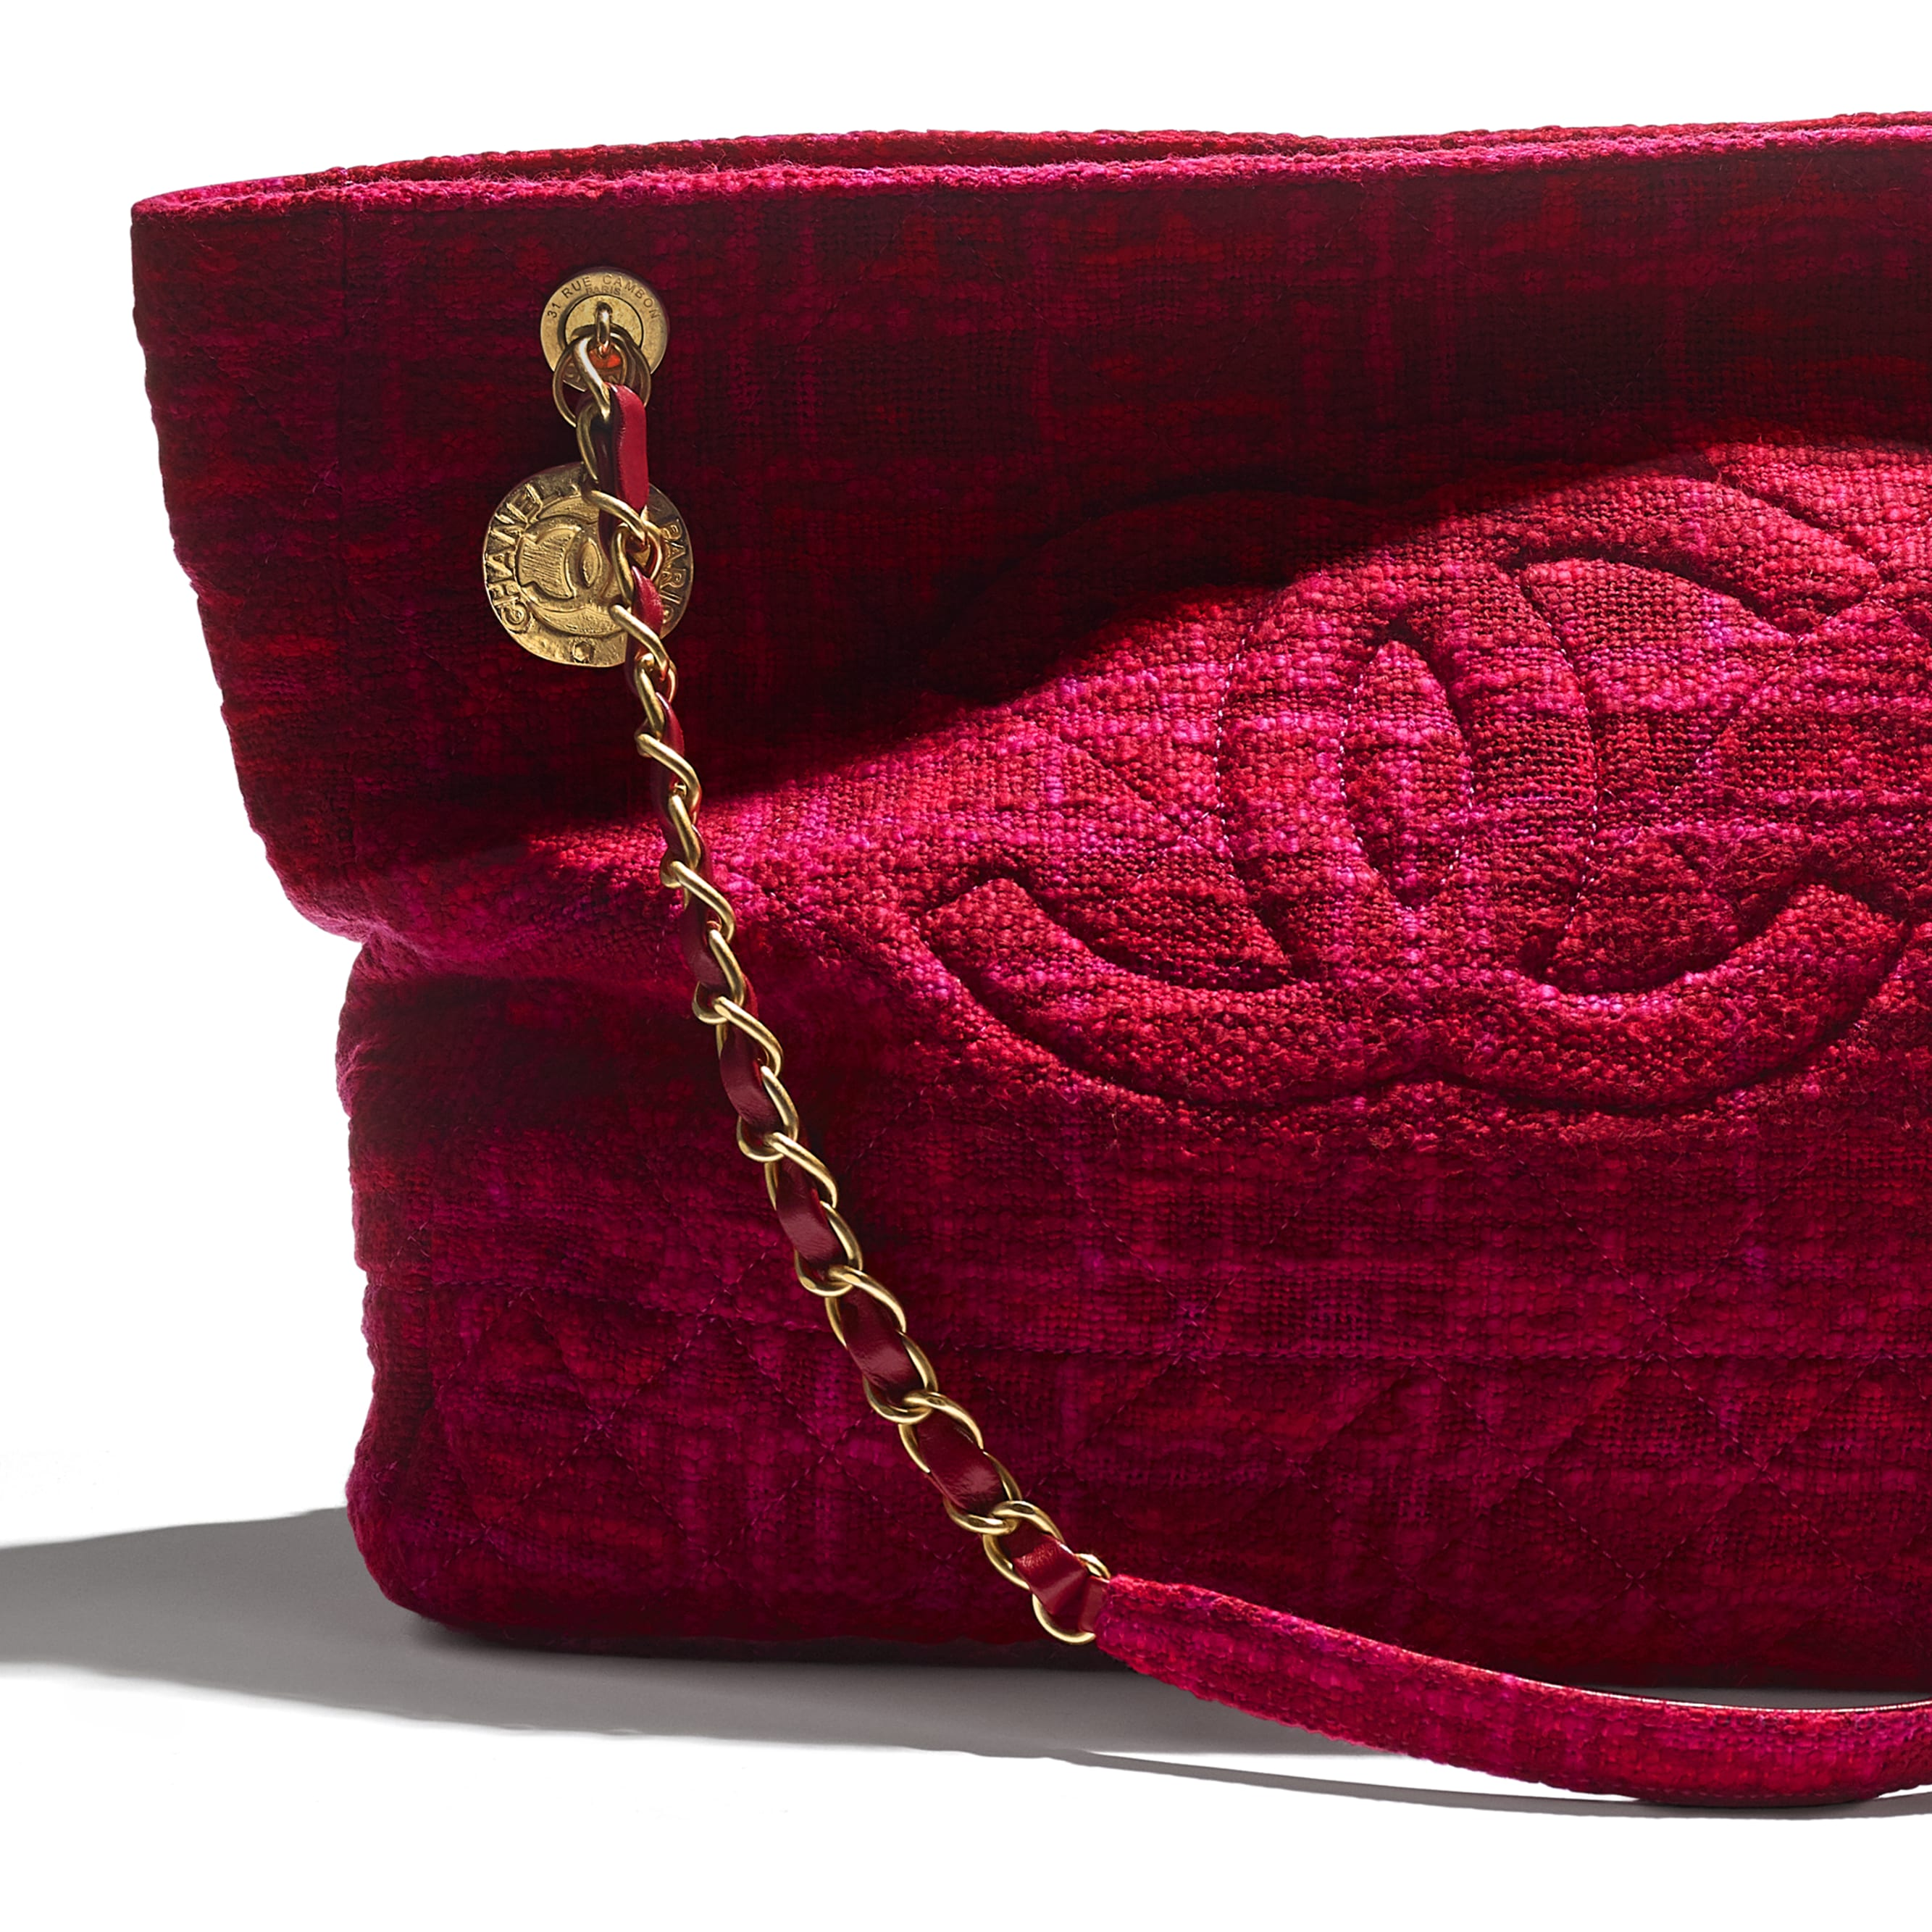 Large Shopping Bag - Fuchsia & Red - Cotton Tweed & Gold-Tone Metal - CHANEL - Extra view - see standard sized version